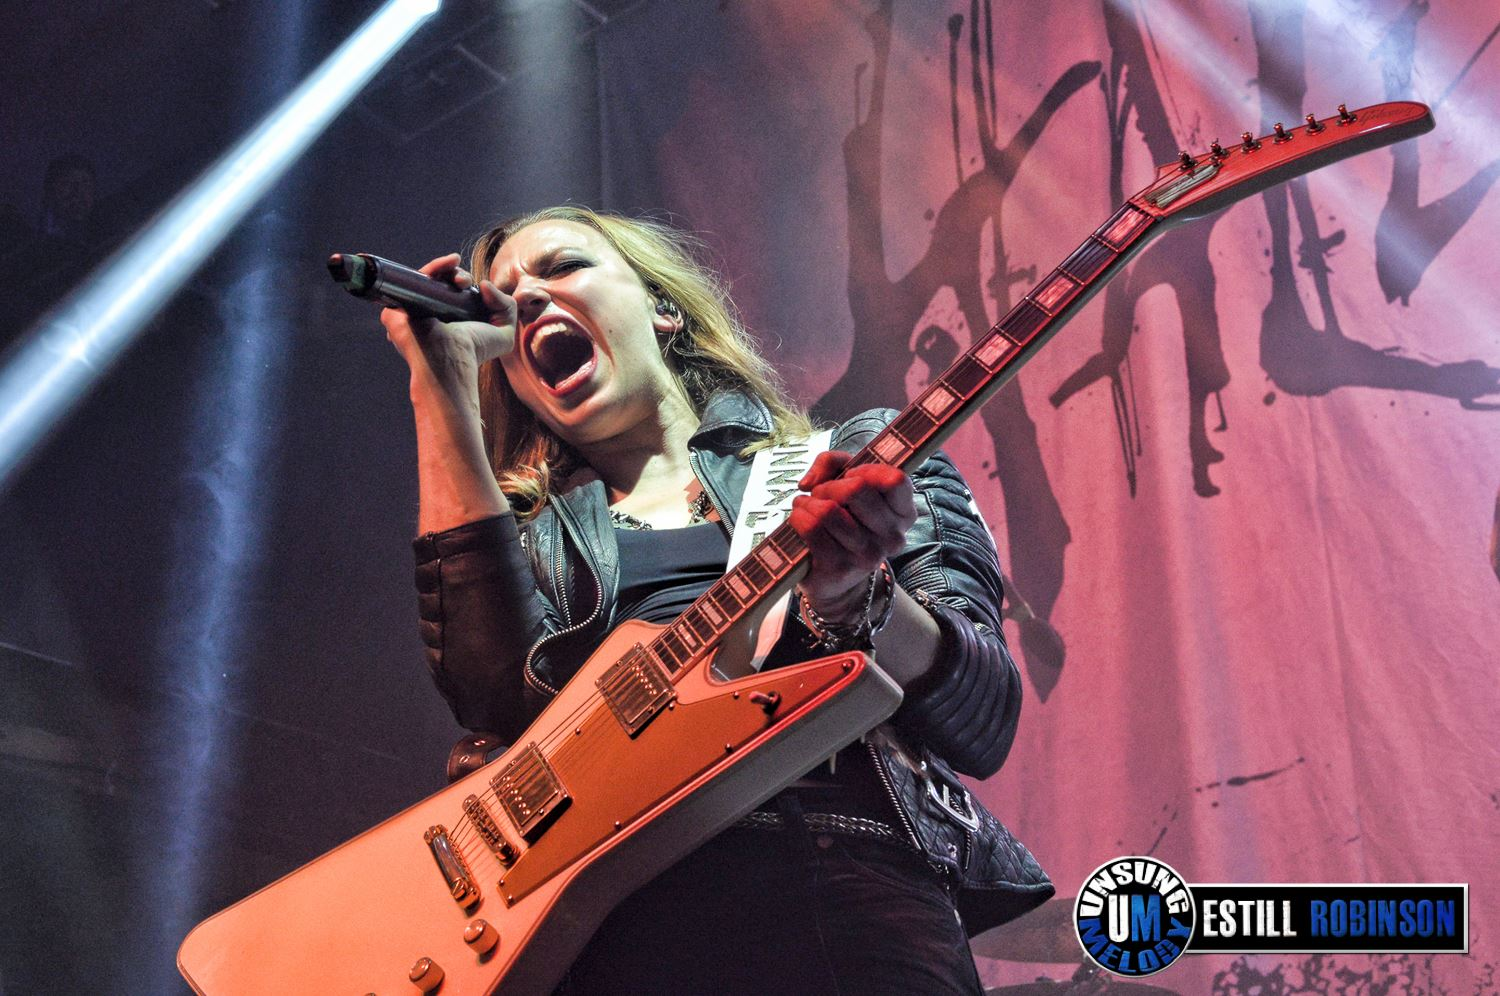 PHOTOS: Halestorm featuring New Medicine at the Mercury Ballroom in Louisville, KY